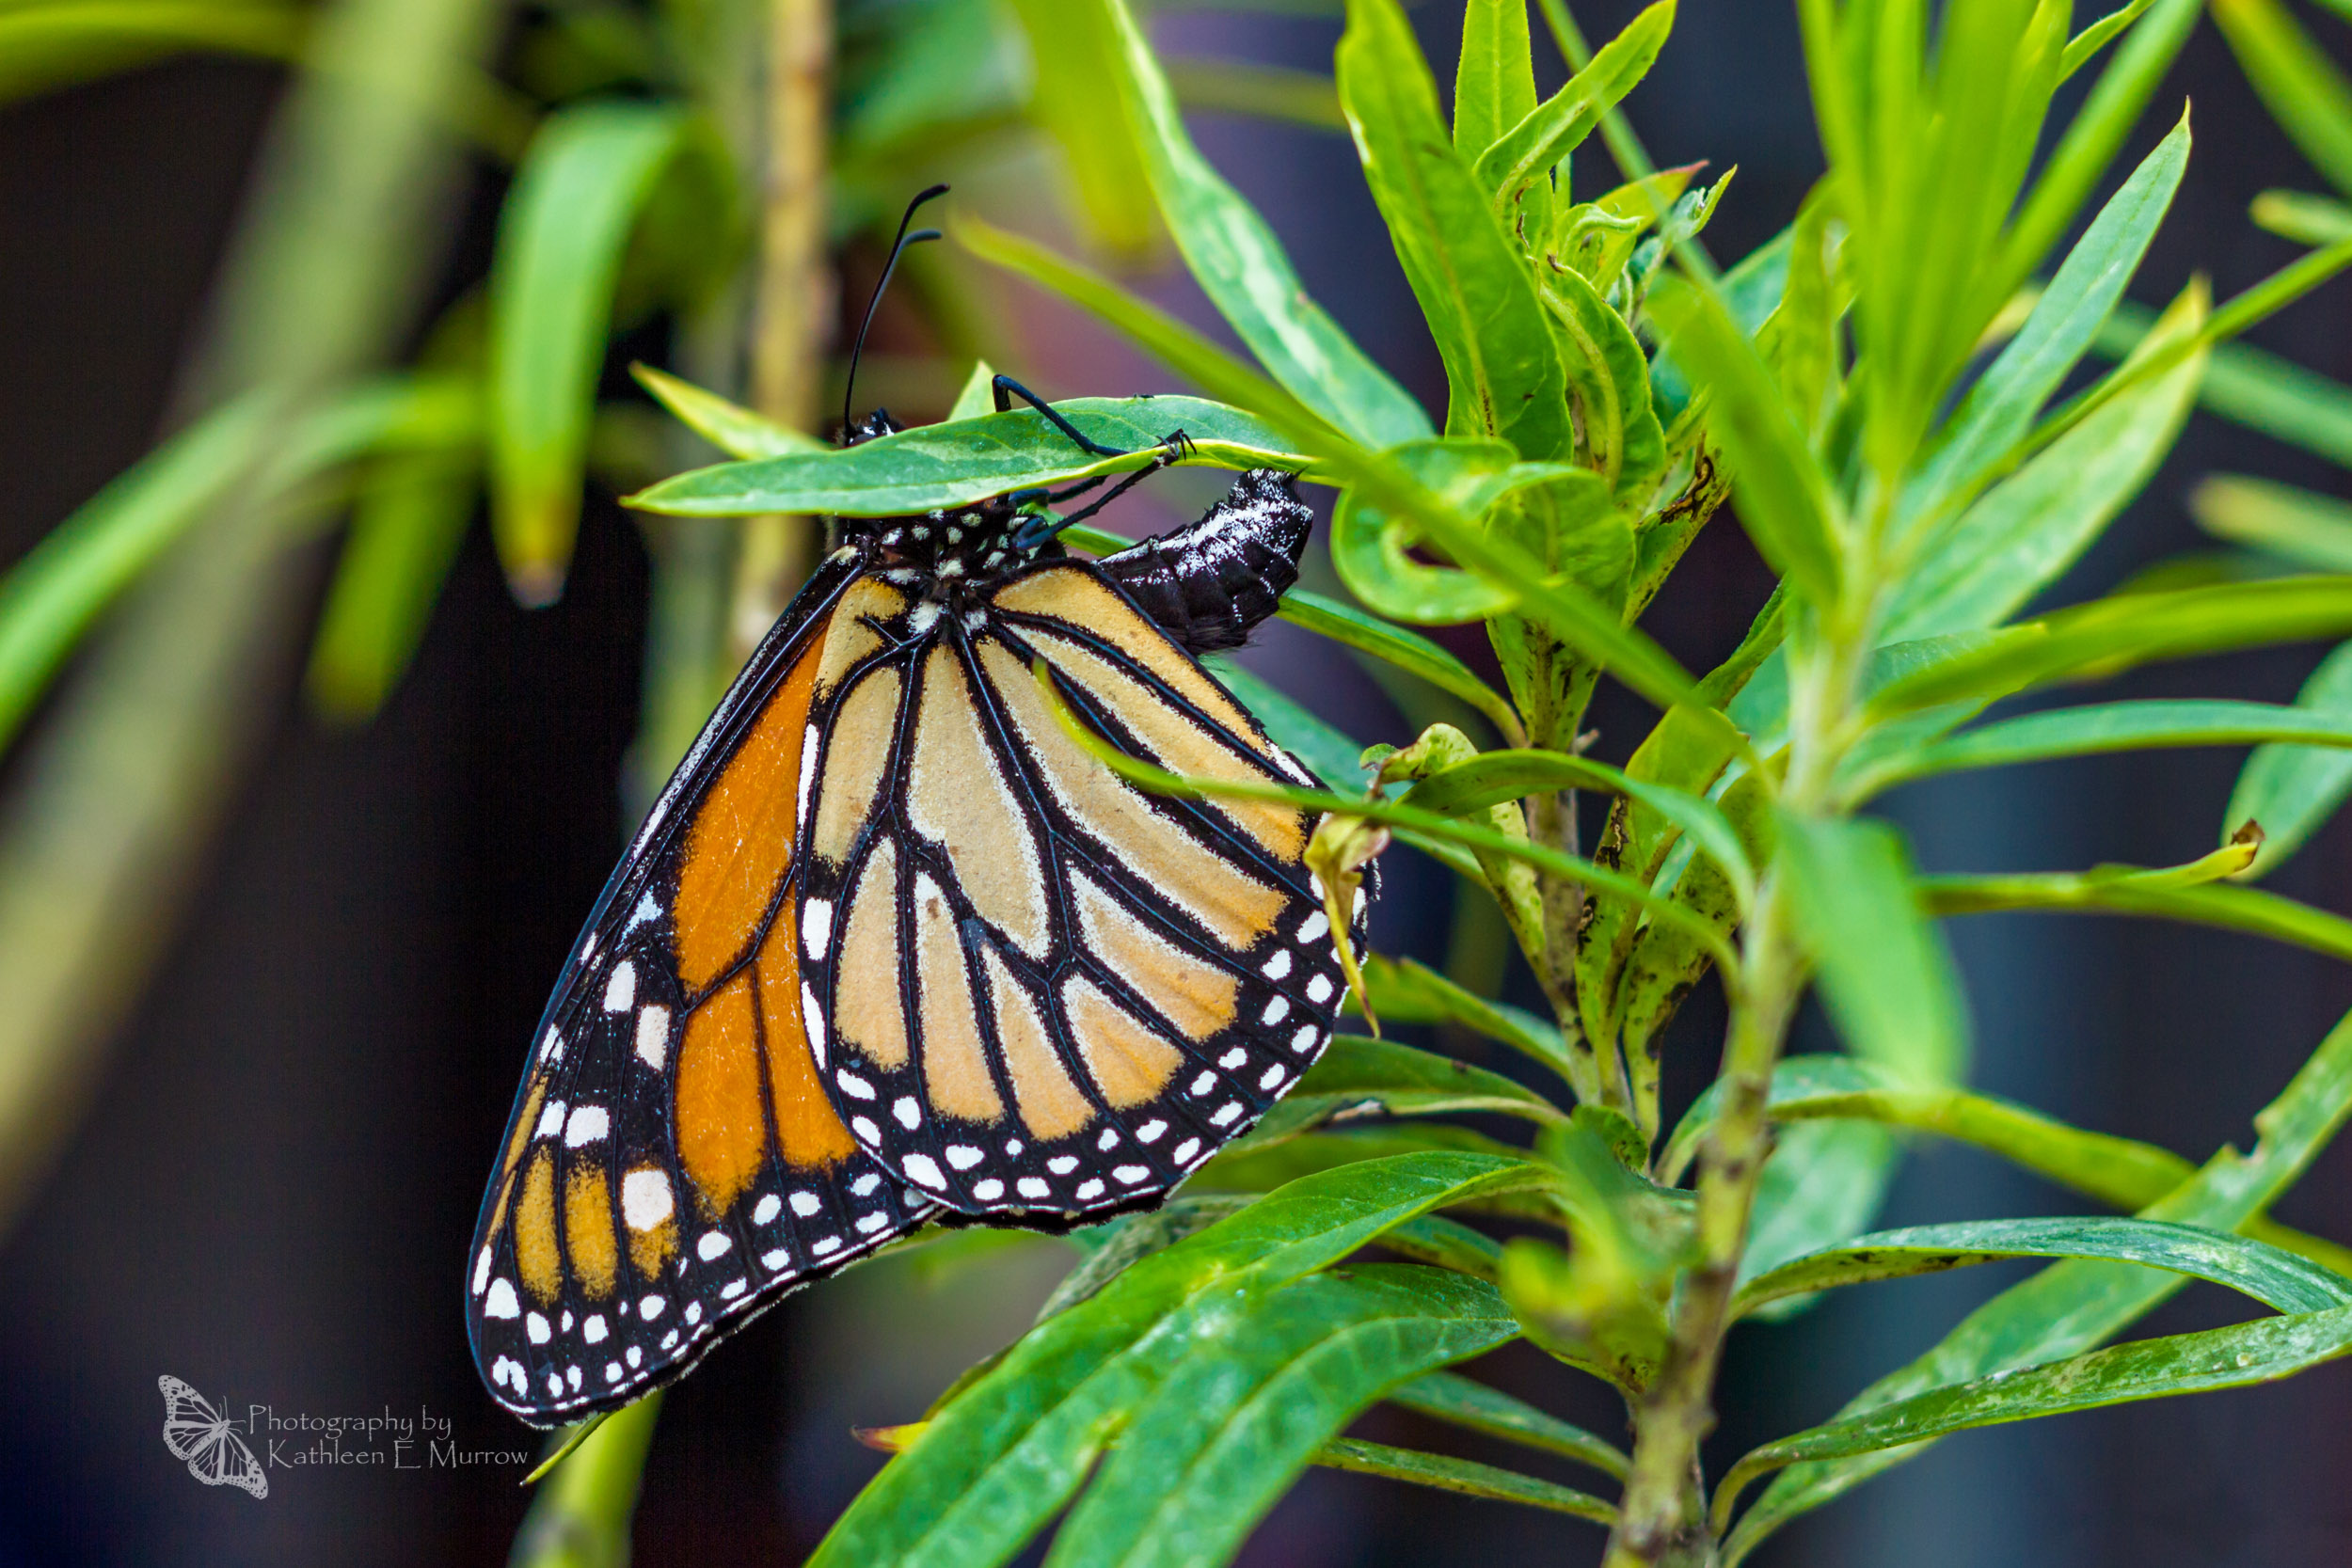 A (partly obscured, female) monarch butterfly laying an egg on the underside of a swan plant leaf